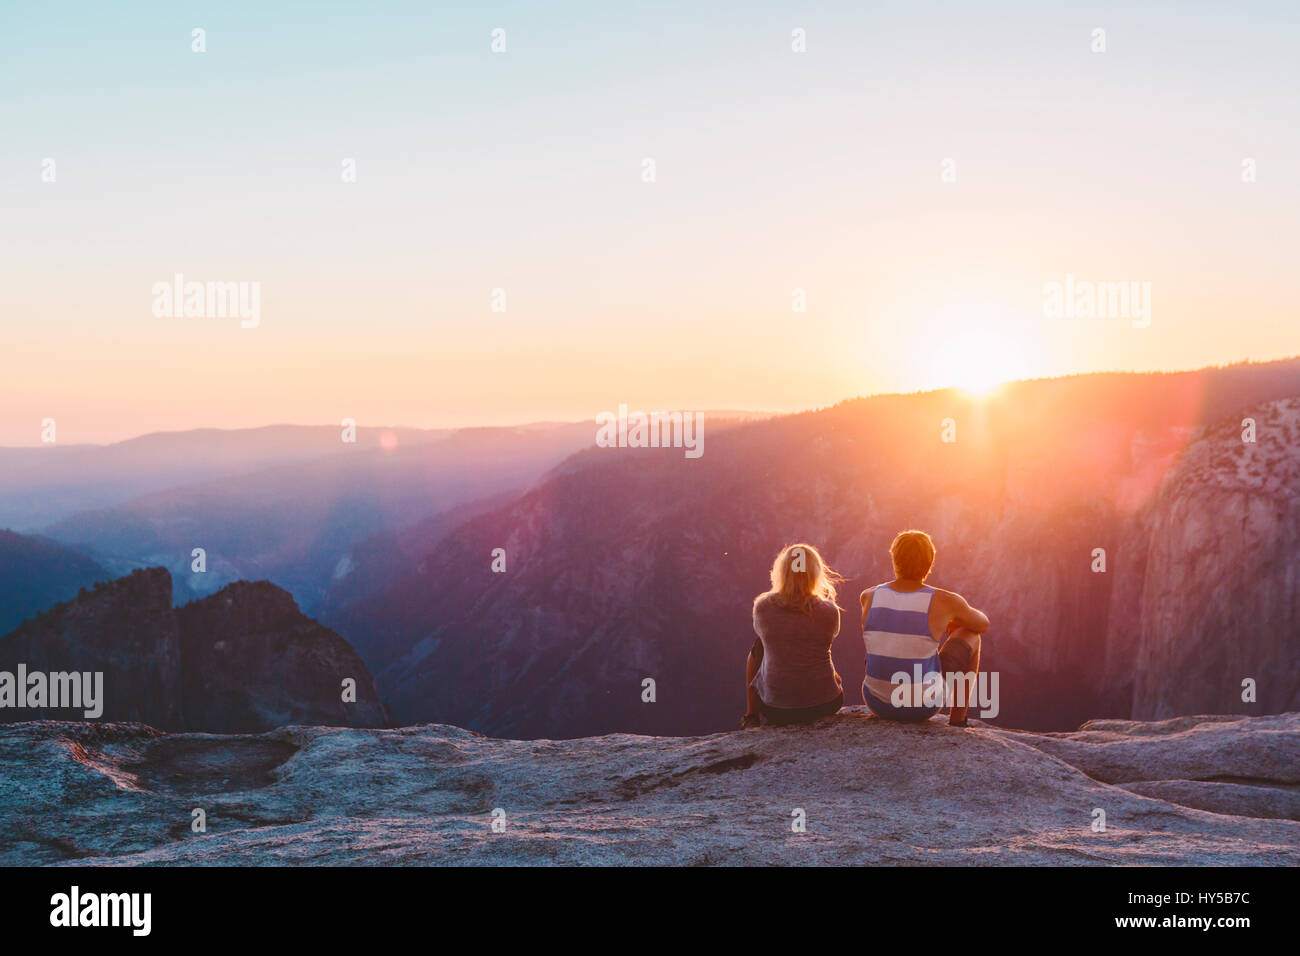 USA, California, Yosemite National Park, Taft Point, Man and woman watching sunset in mountains Stock Photo